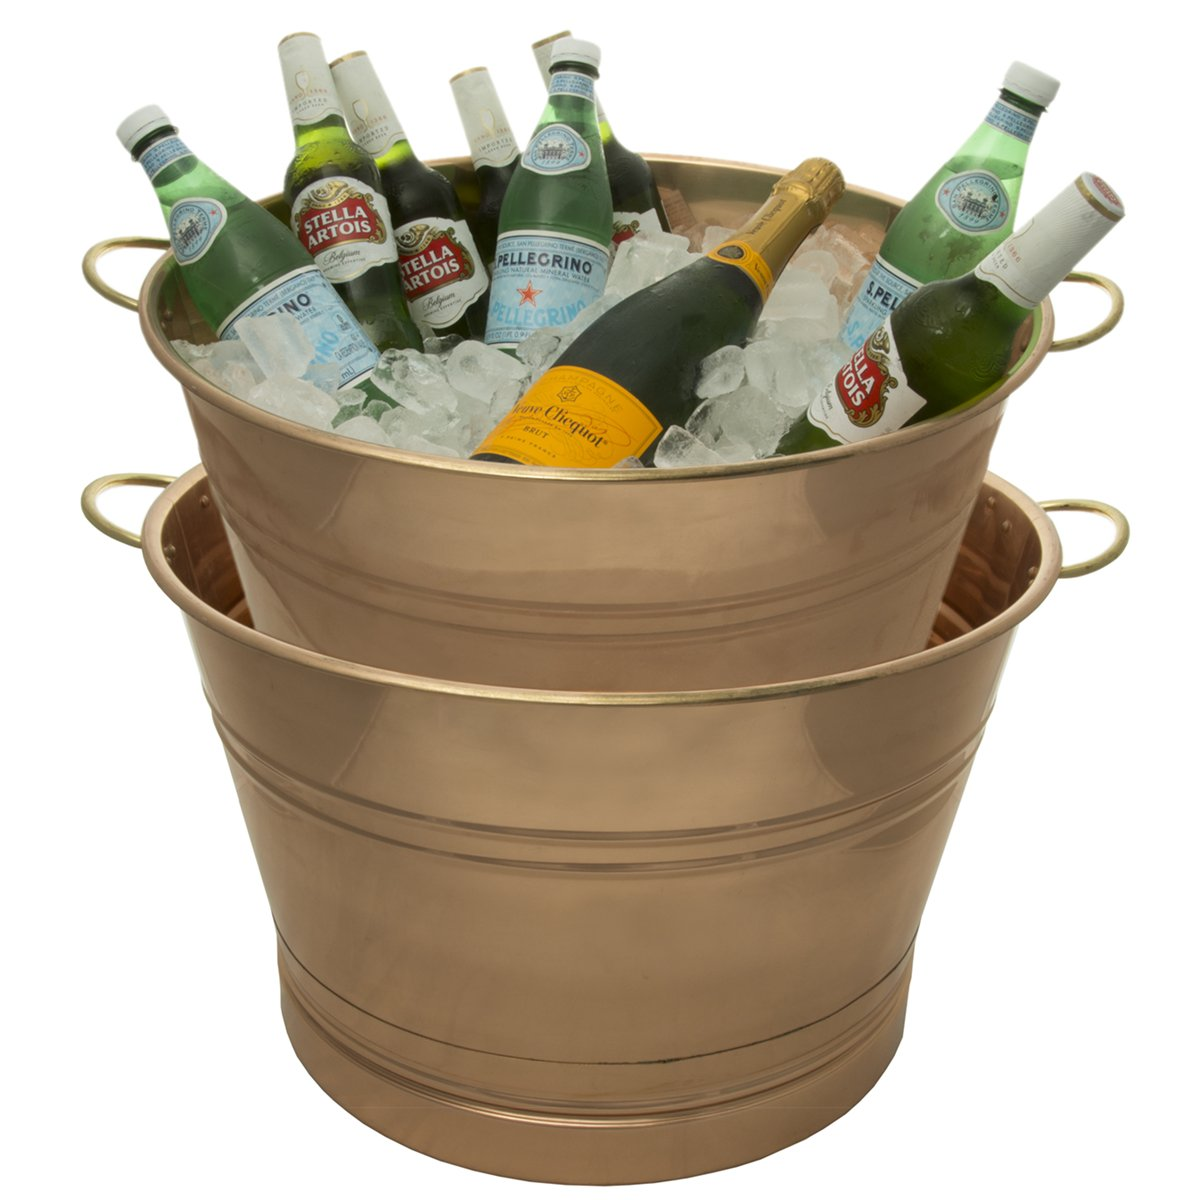 2 Pack Copper 7.75 Gallon Party Tubs With Handles Metal Big Ice Bucket For Drinks Décor Parties